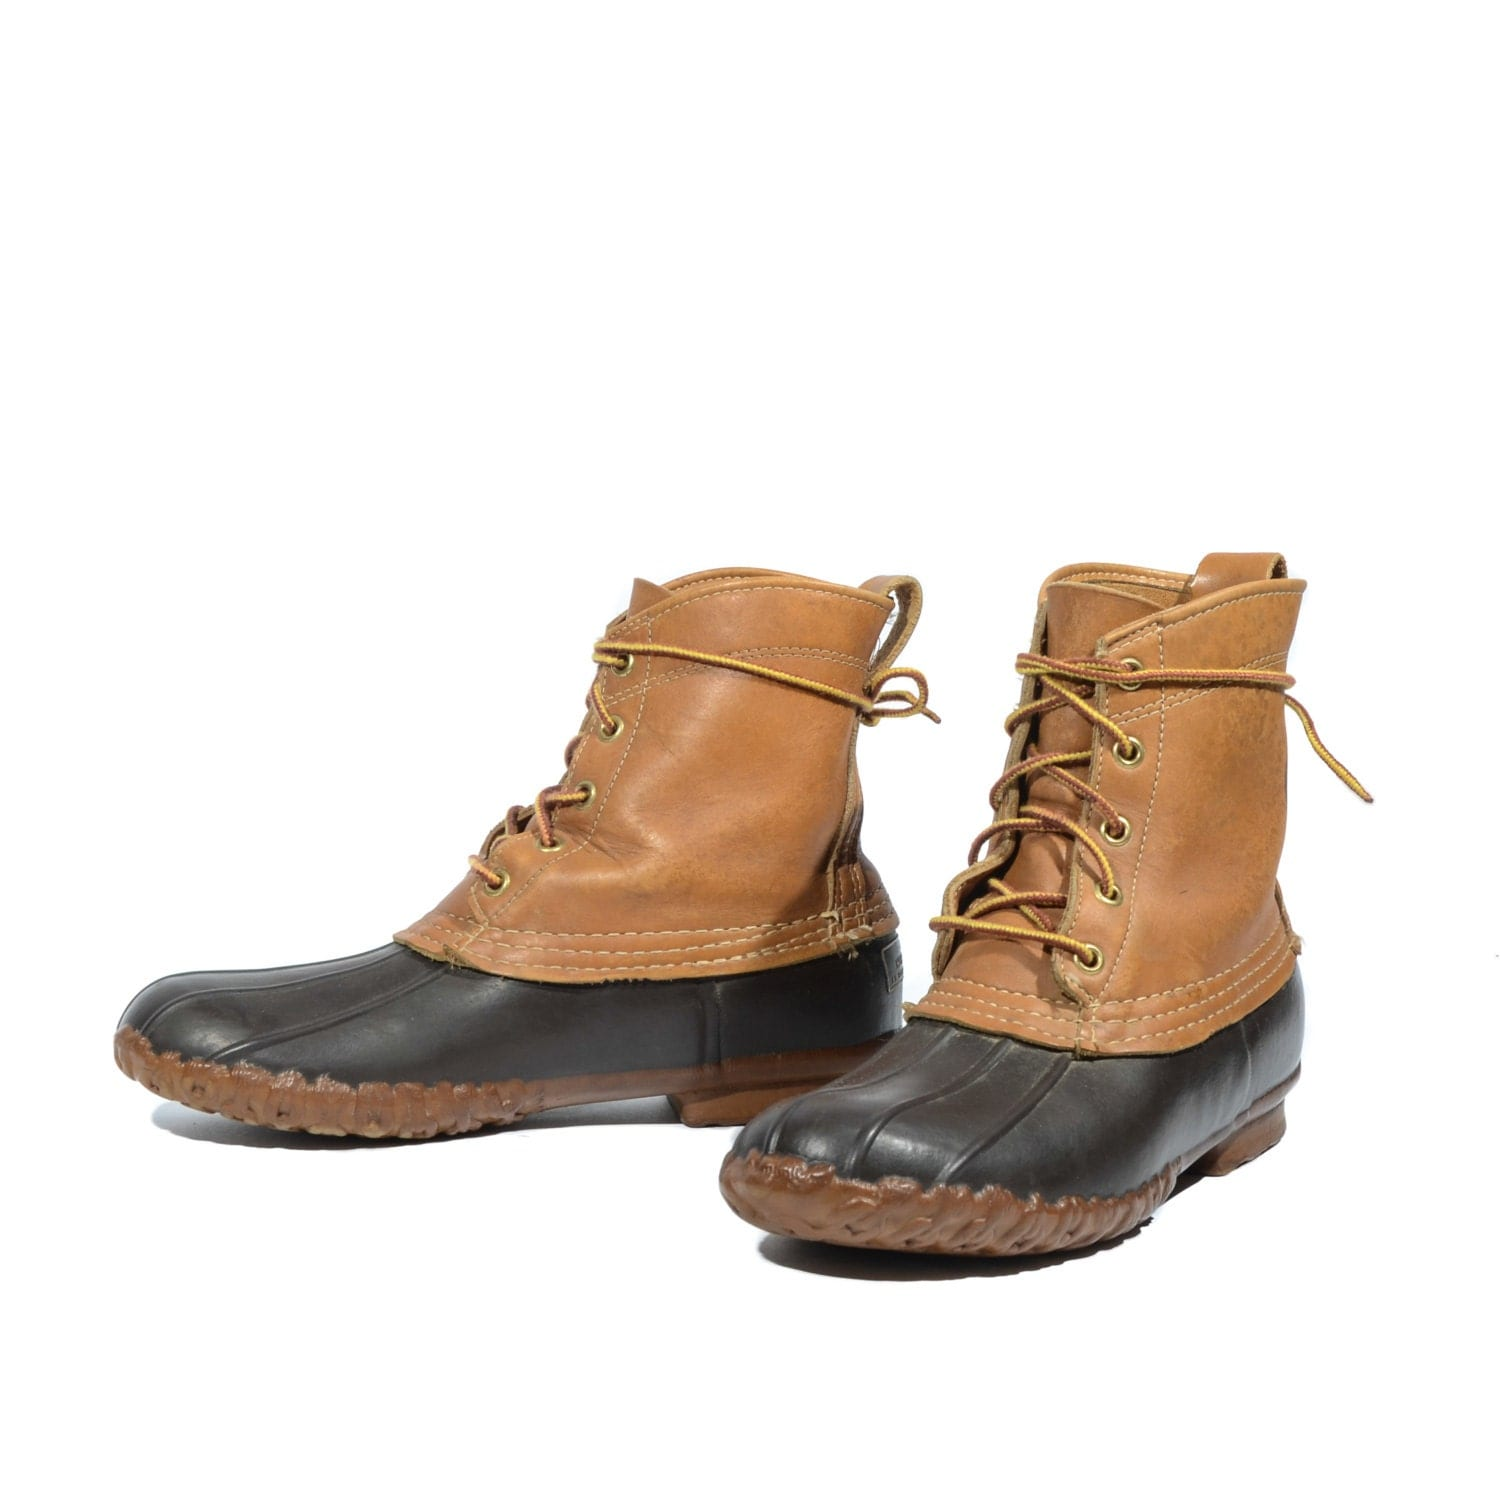 Unique 1950s LL Bean Duck Boots Womens 10 Mens 8